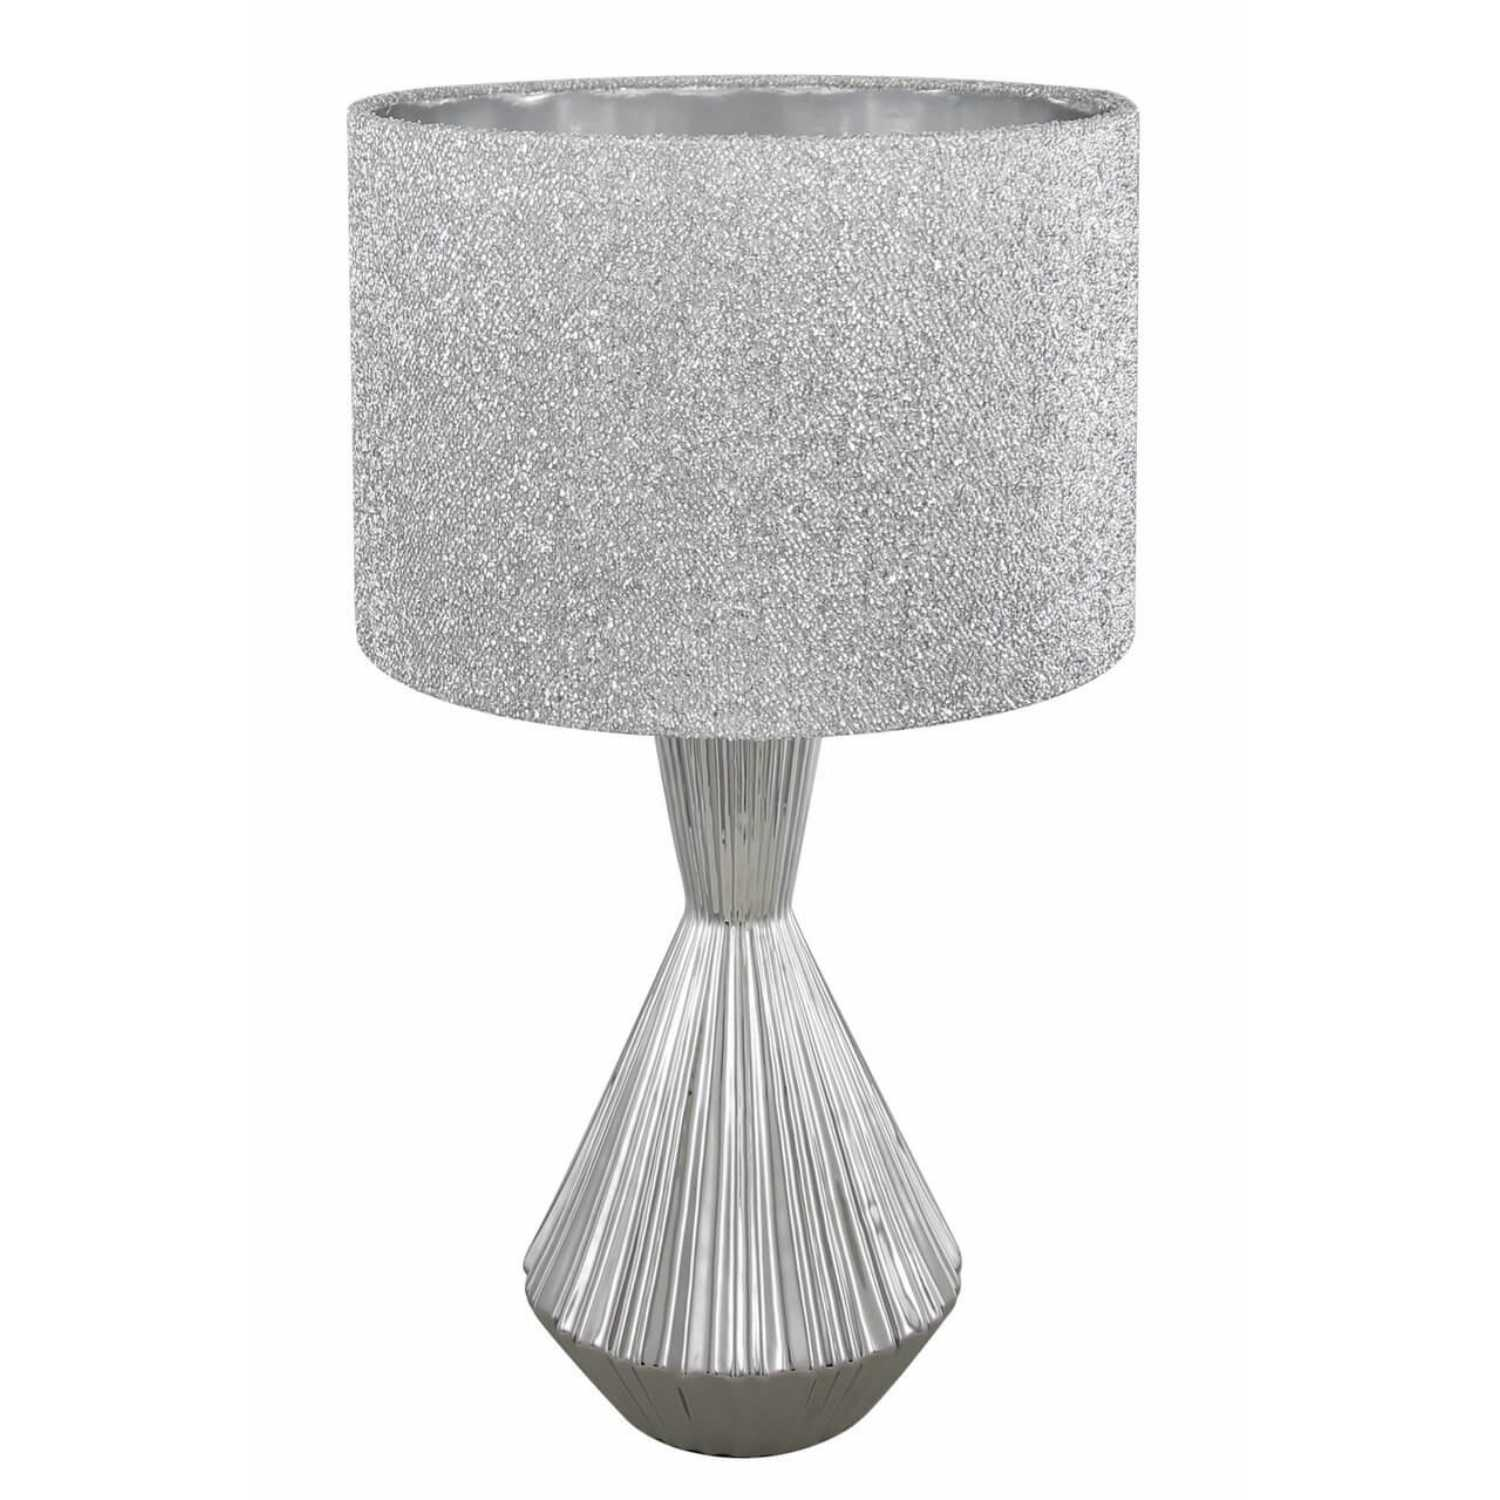 Silver ceramic hourglass table lamp with 13 inch glitter drum shade click to view larger image and more views silver ceramic hourglass table lamp aloadofball Choice Image